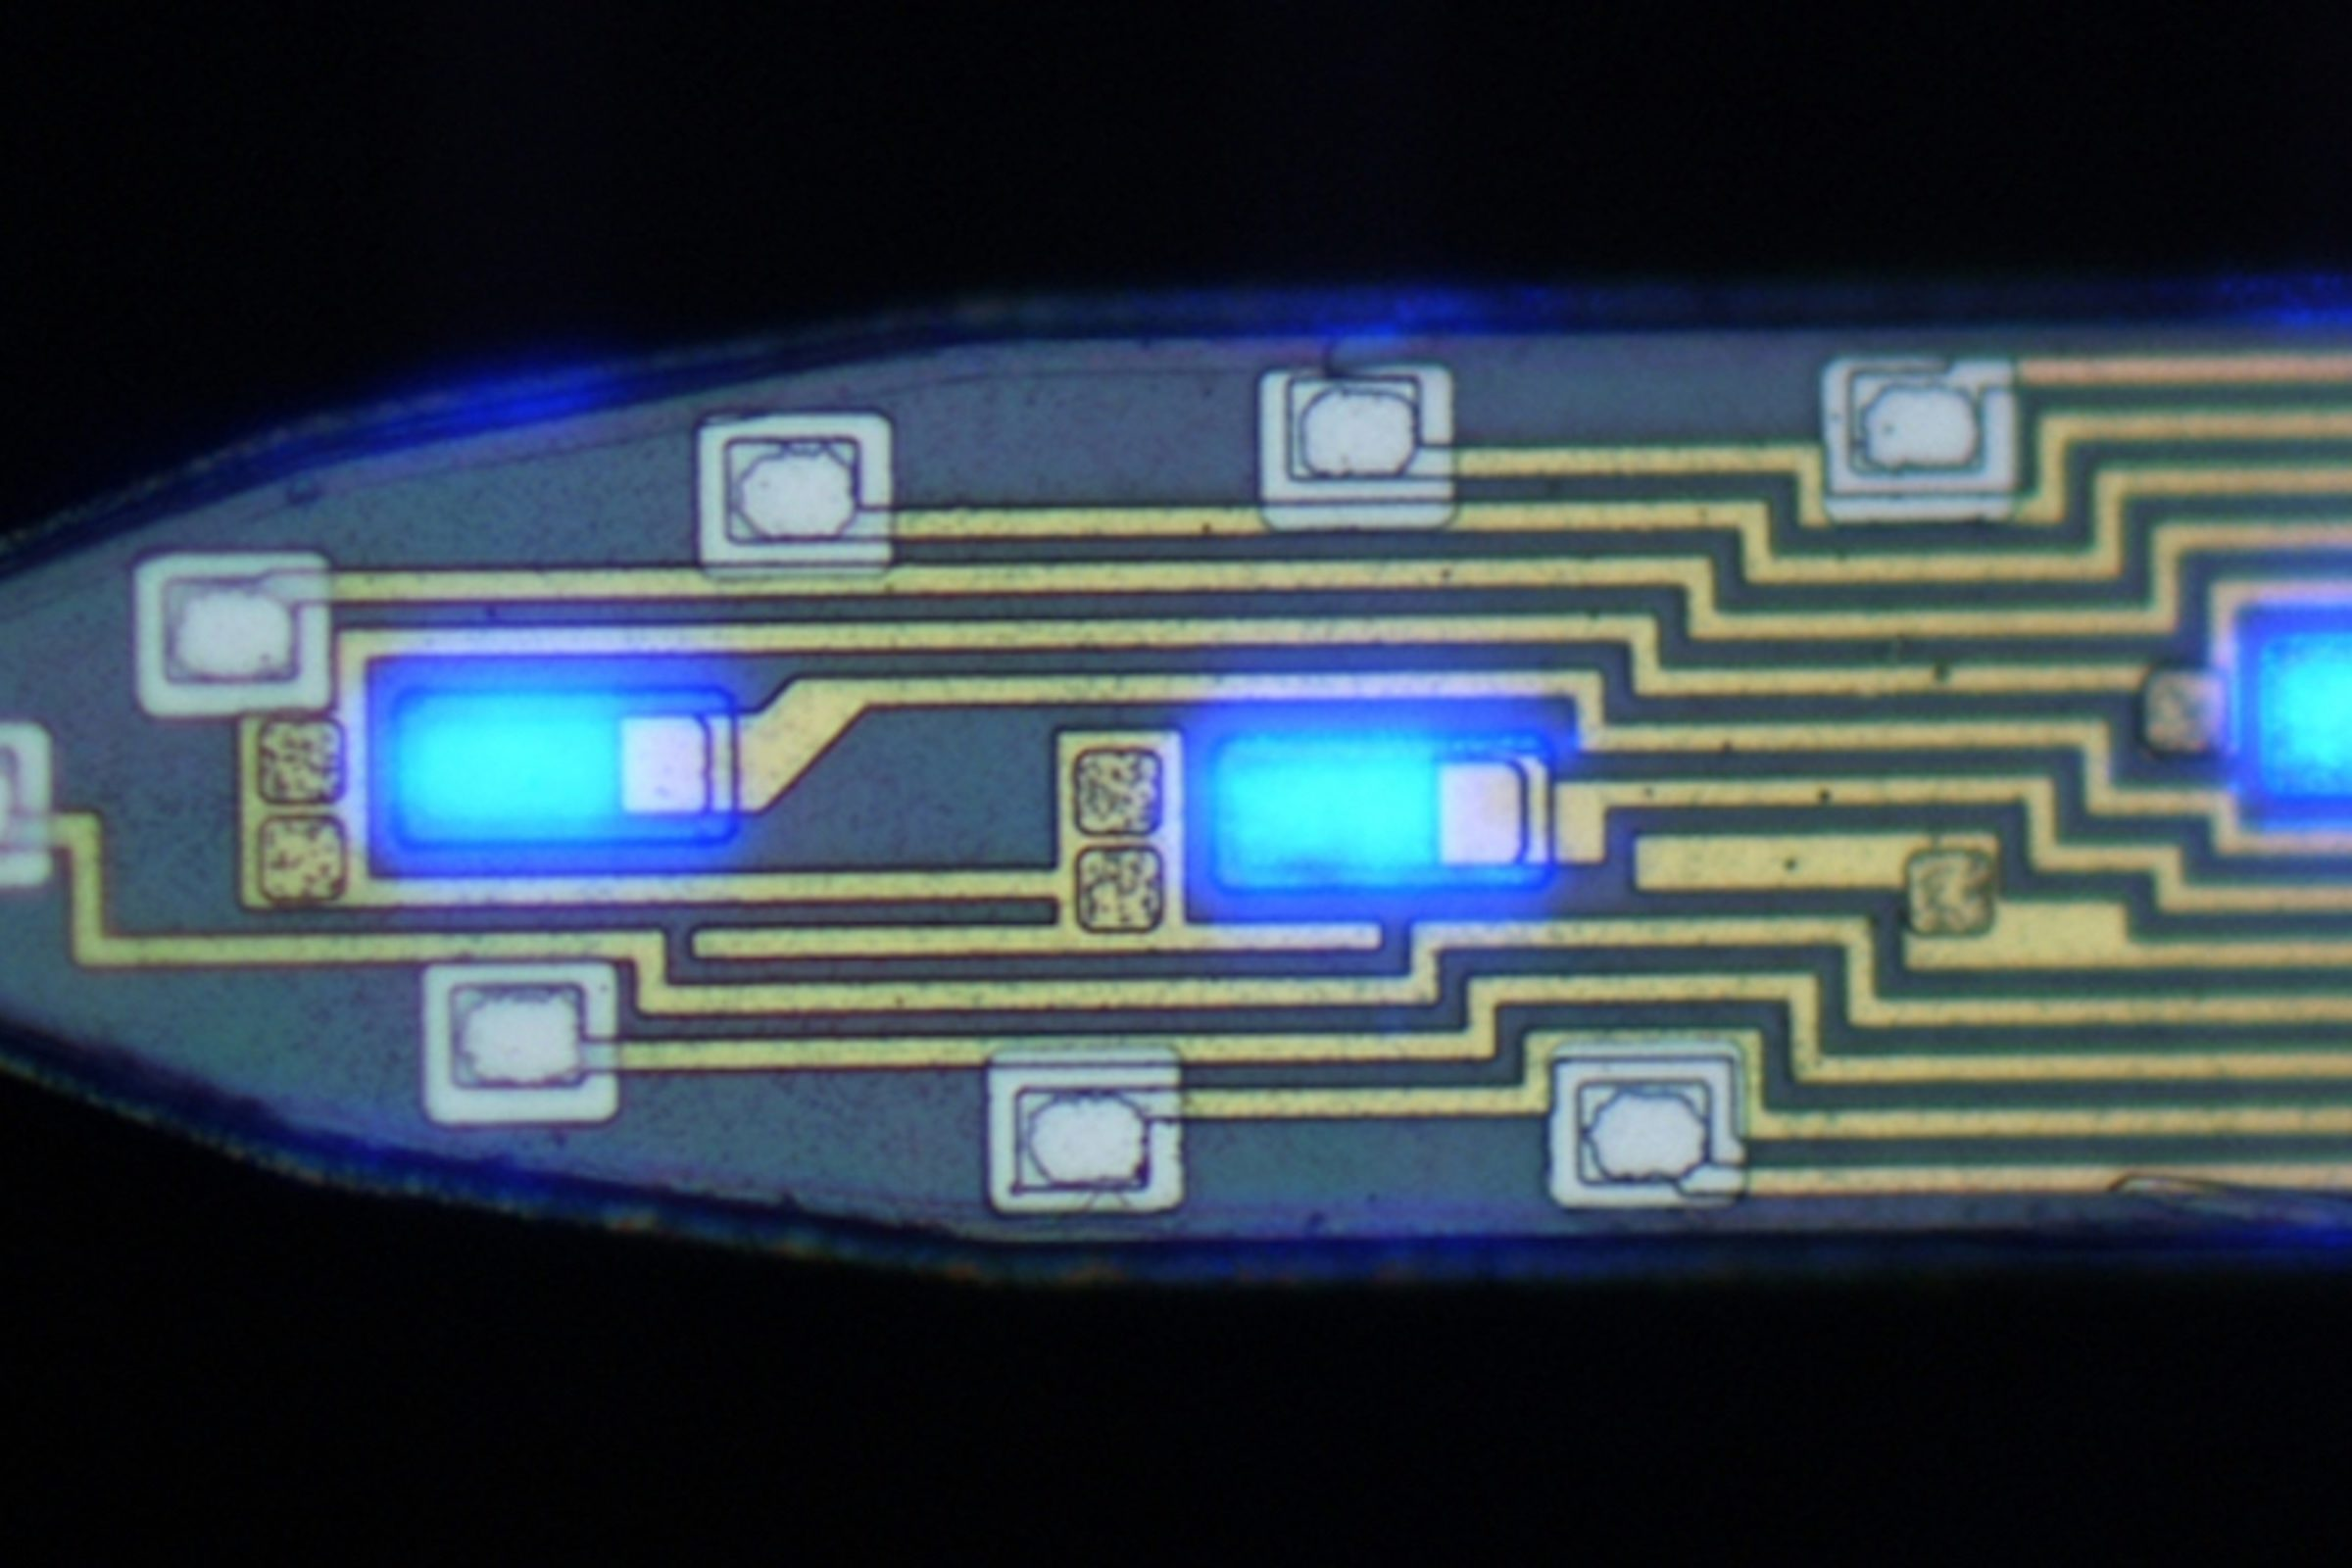 Tine of a probe that has minuscule LED lights and electrodes